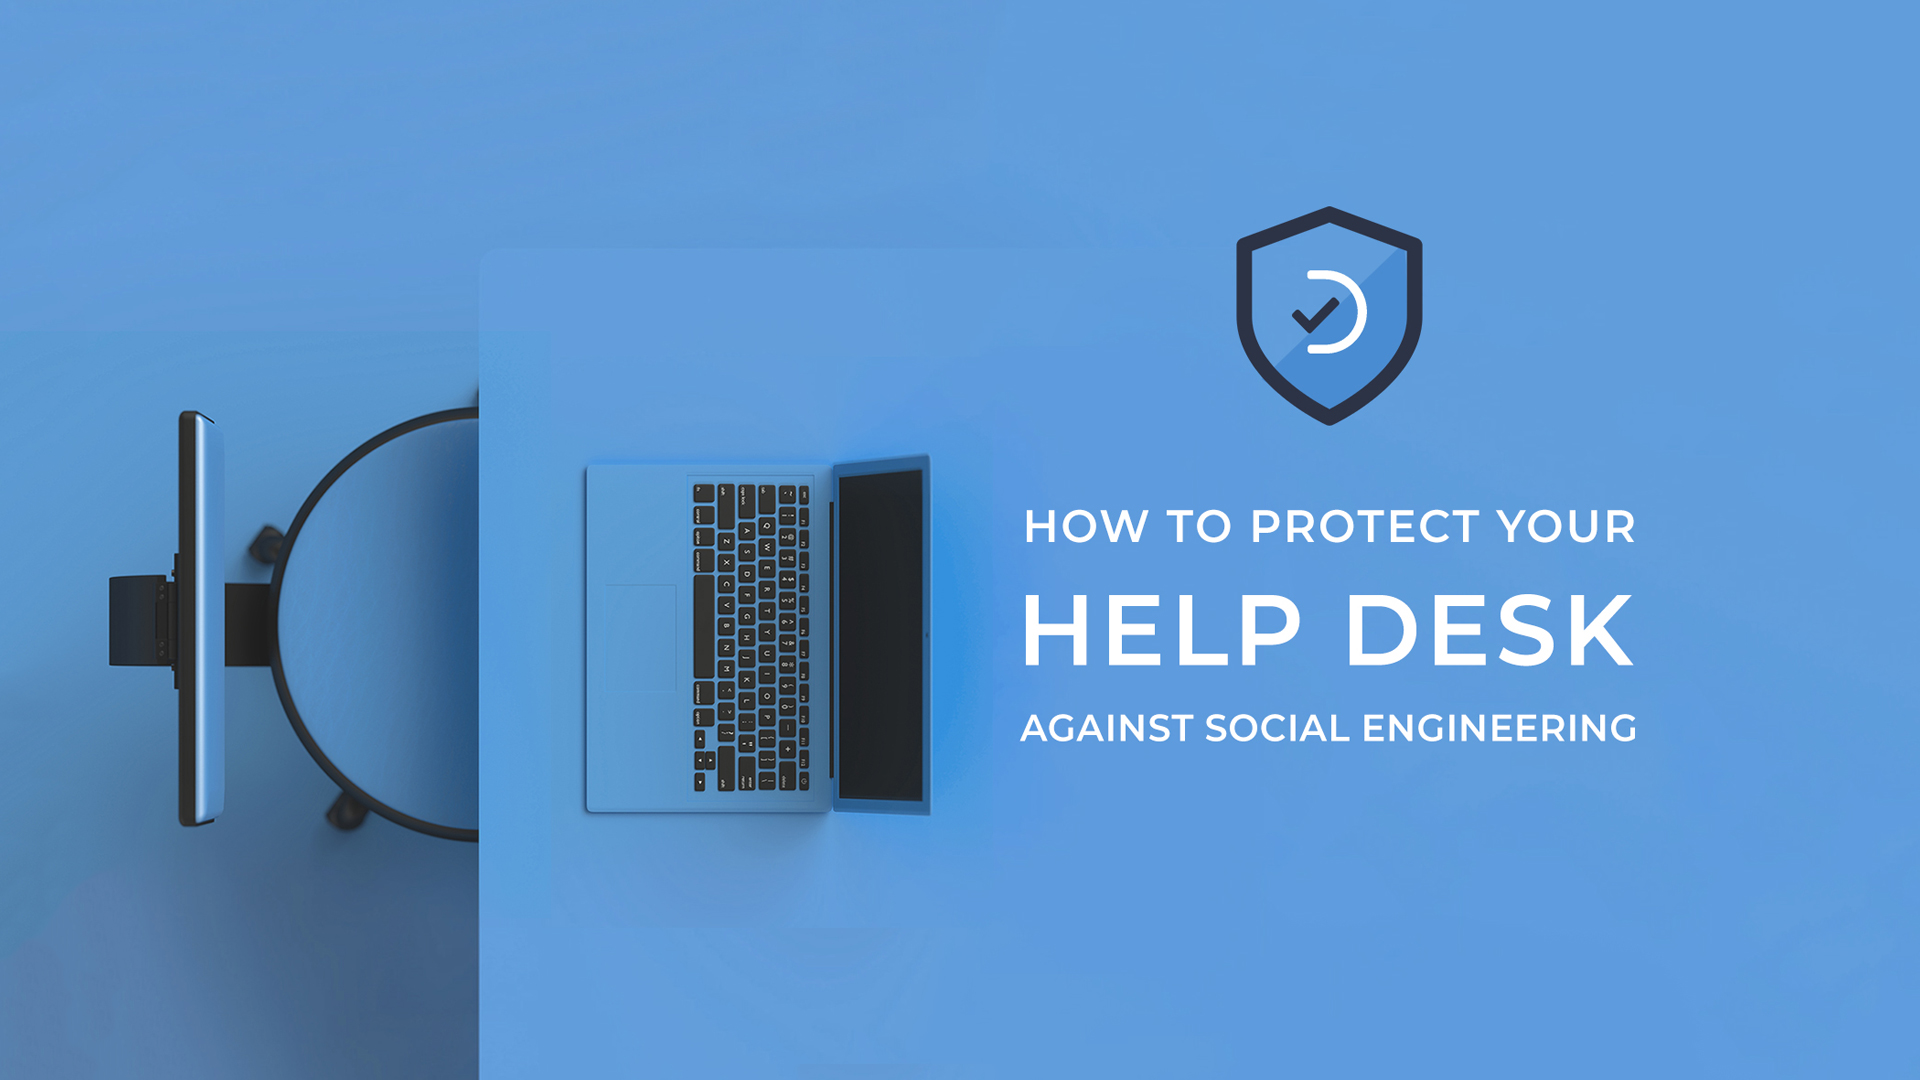 Protect Your Help Desk Against Social Engineering